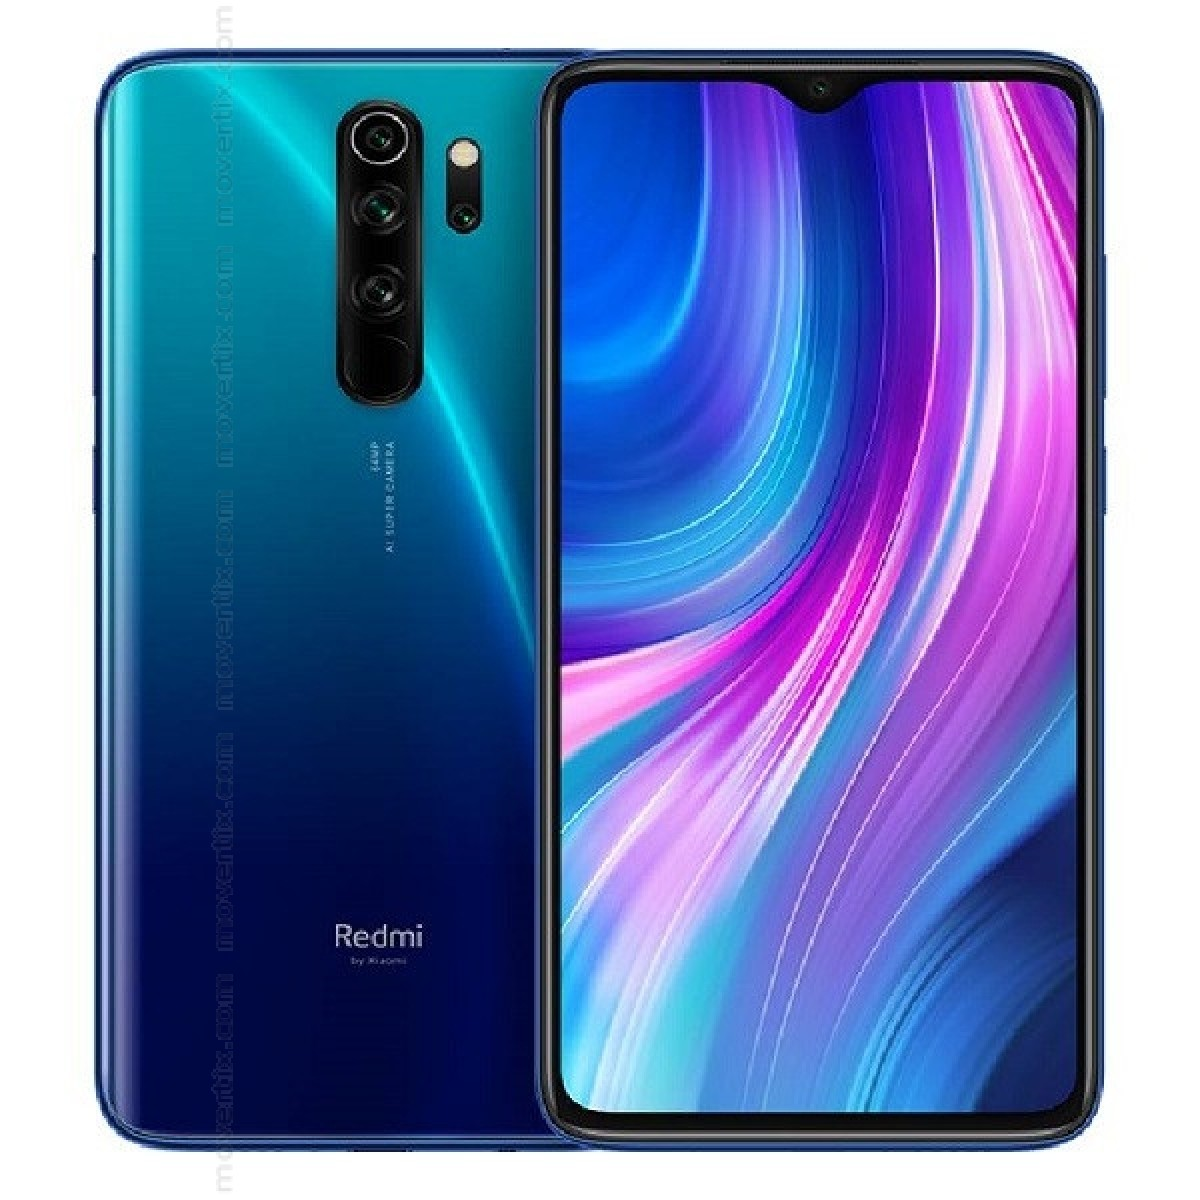 Xiaomi Redmi 8 - description and parameters